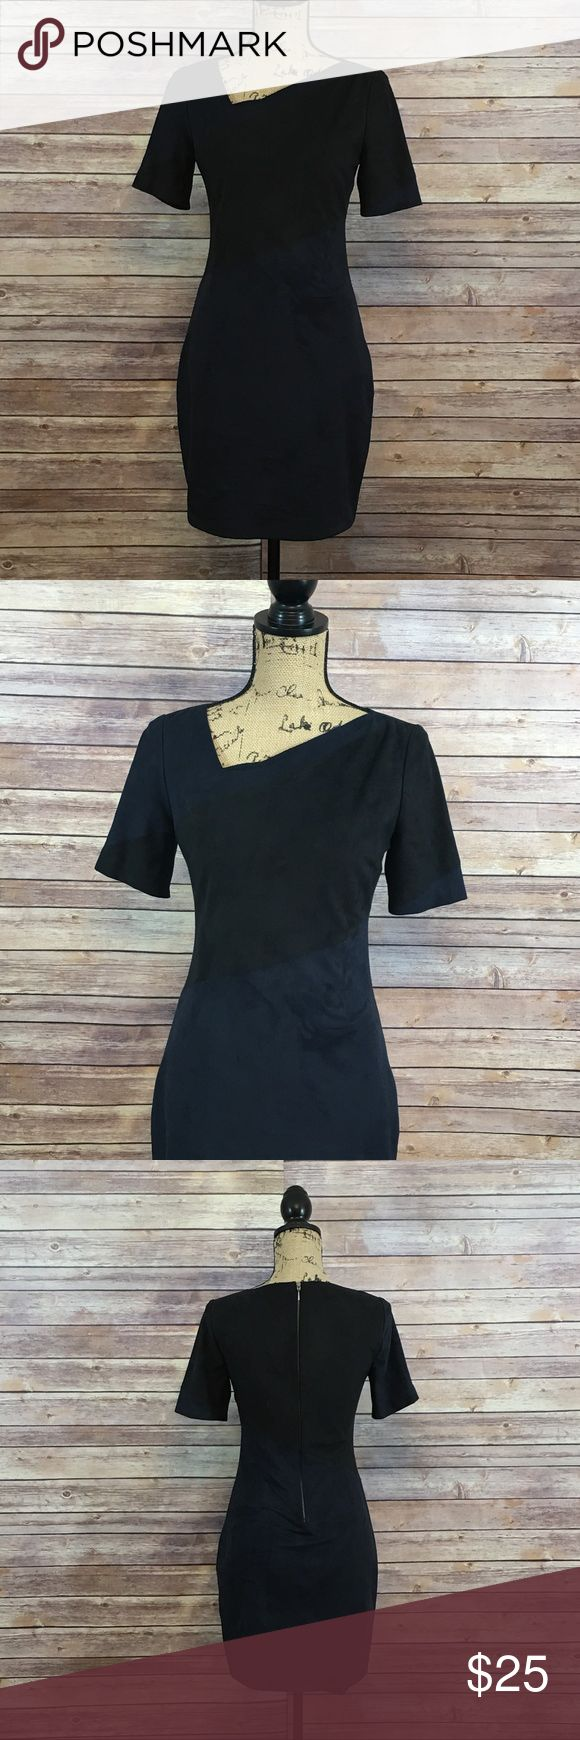 Elie Tahari Dress Size 2 Elie Tahari Dress Navy Blue and Black Colorblock Suede Zippered Back In excellent condition No signs of wear or fading Elie Tahari Dresses